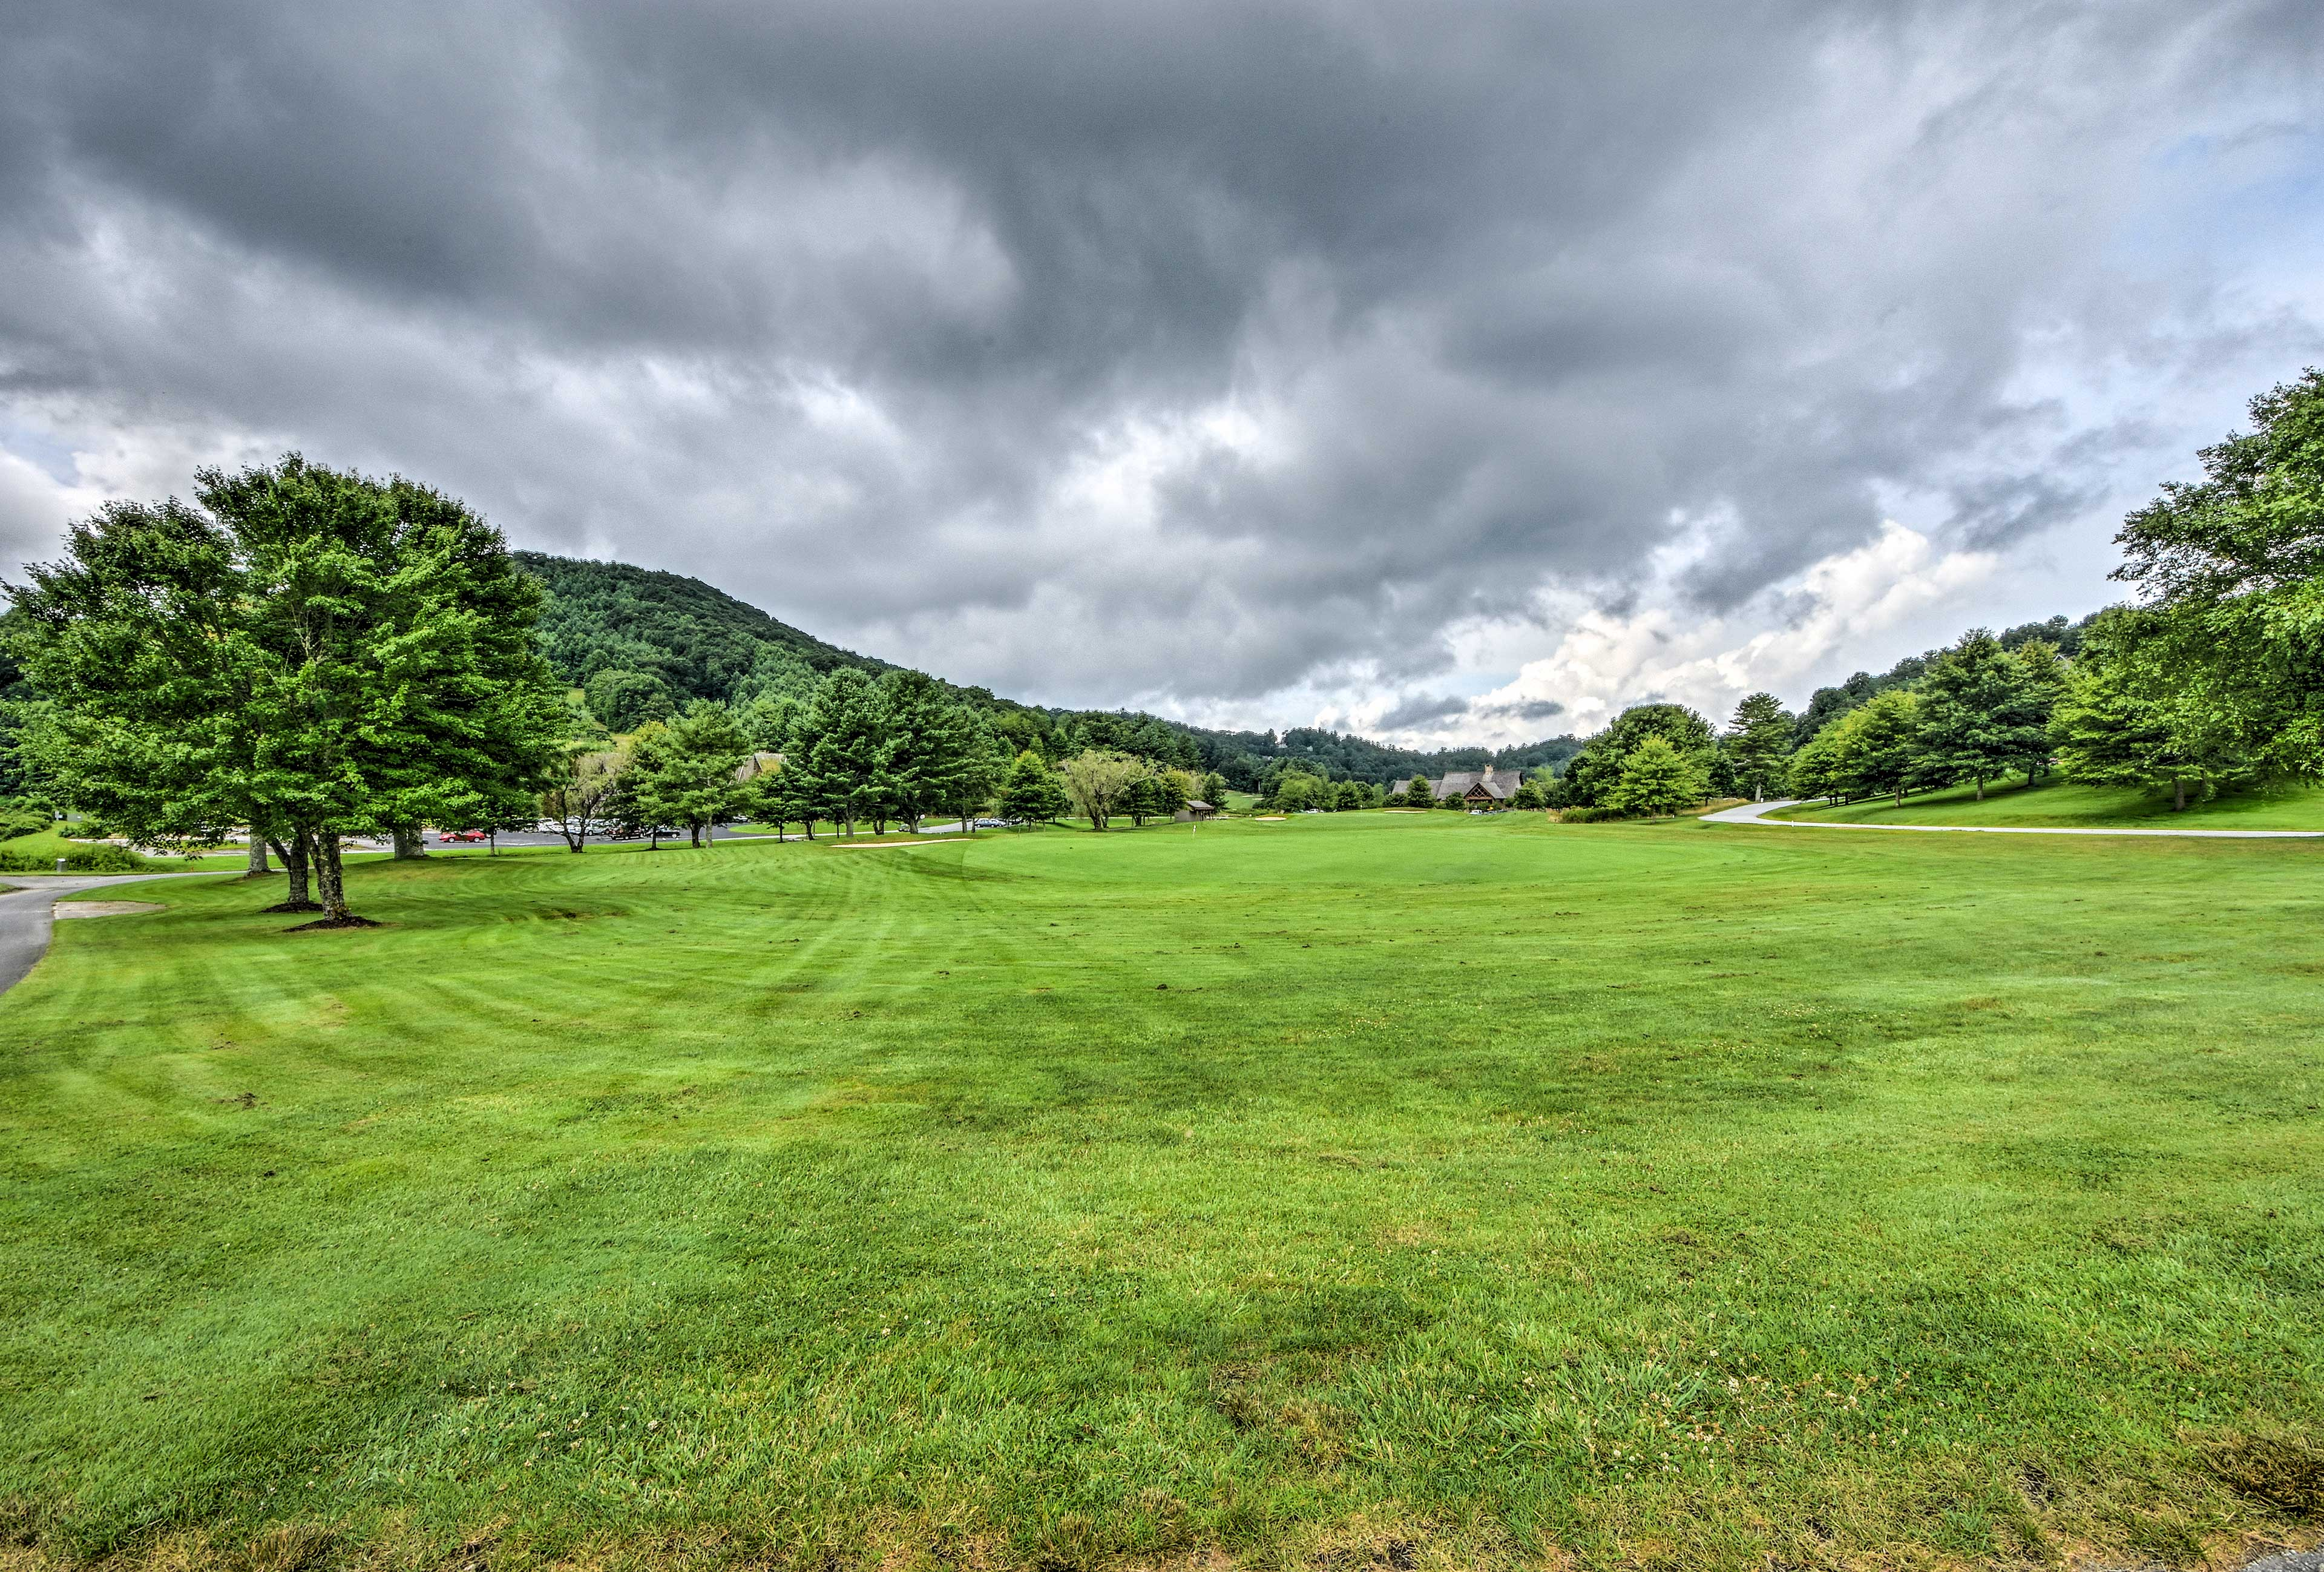 The Sky Valley Golf Club is just steps away.